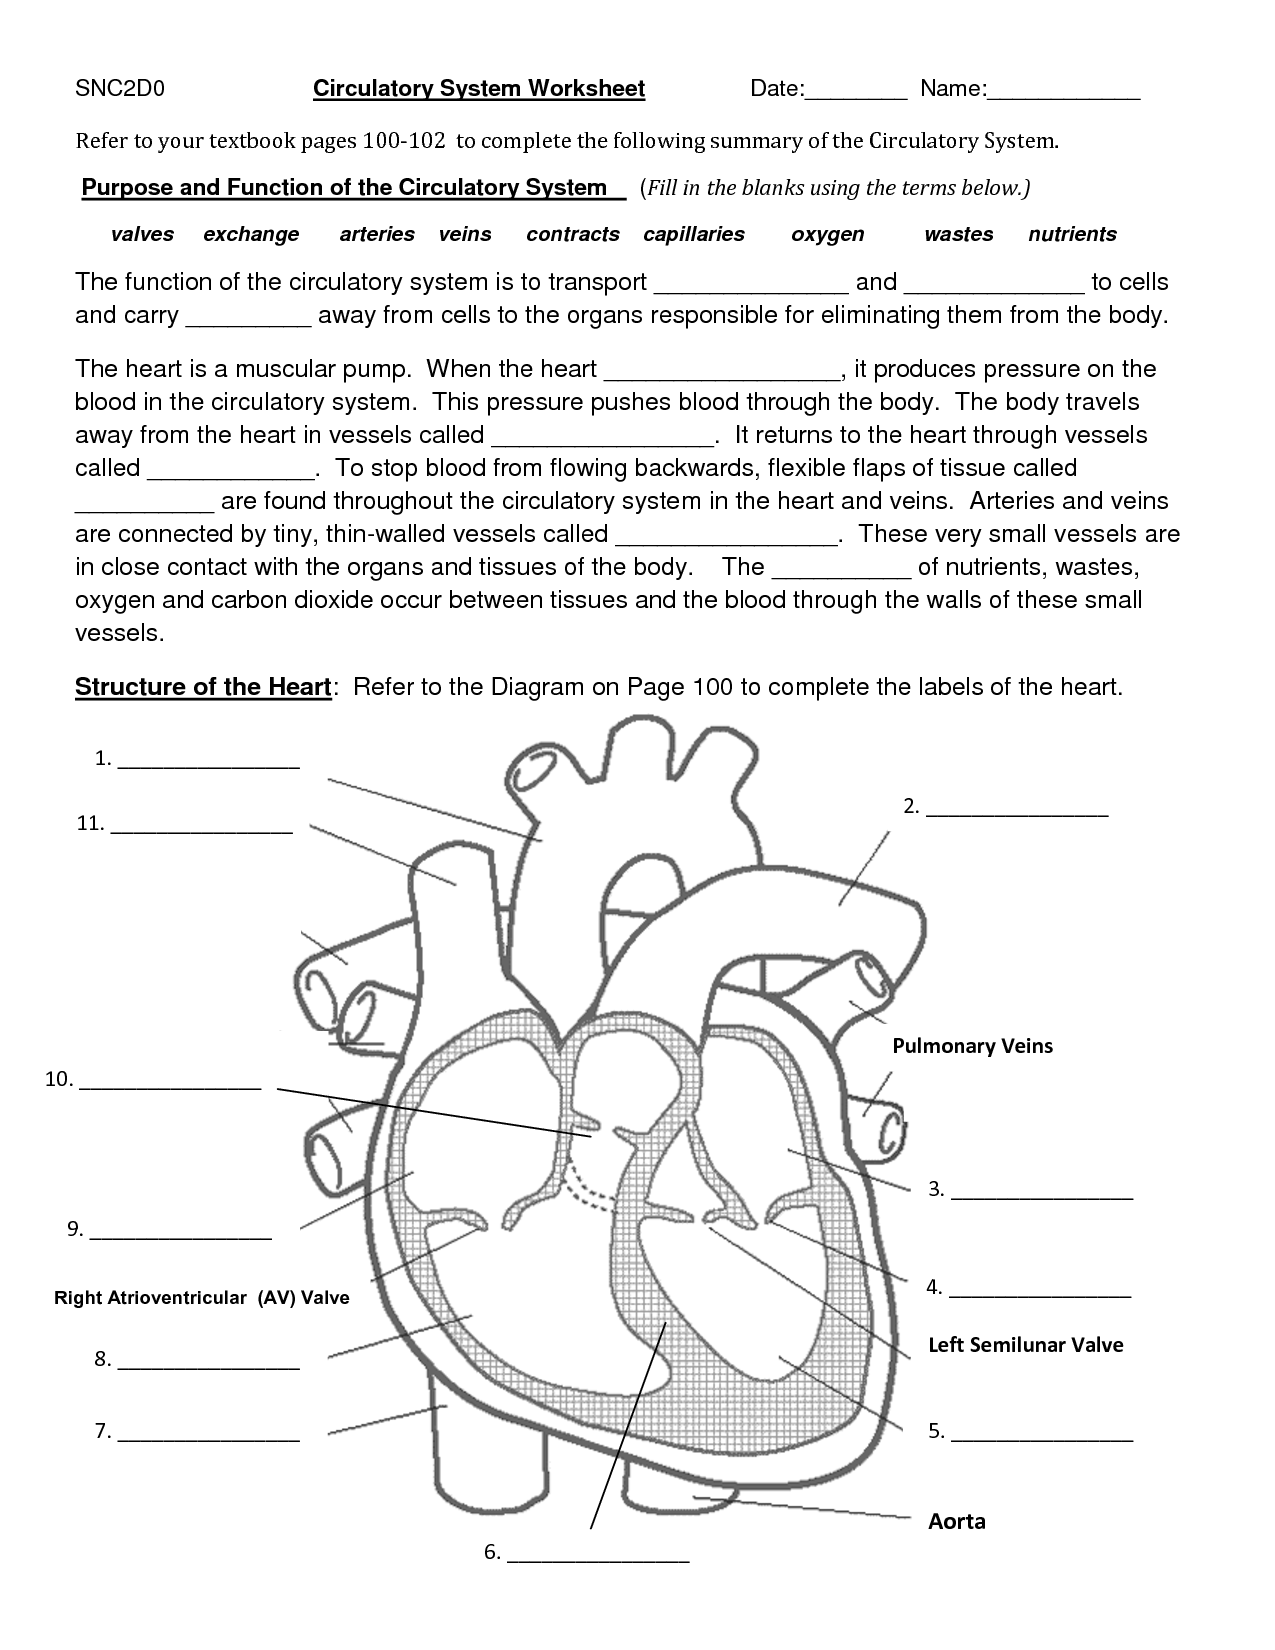 The Circulatory System Worksheets Answers